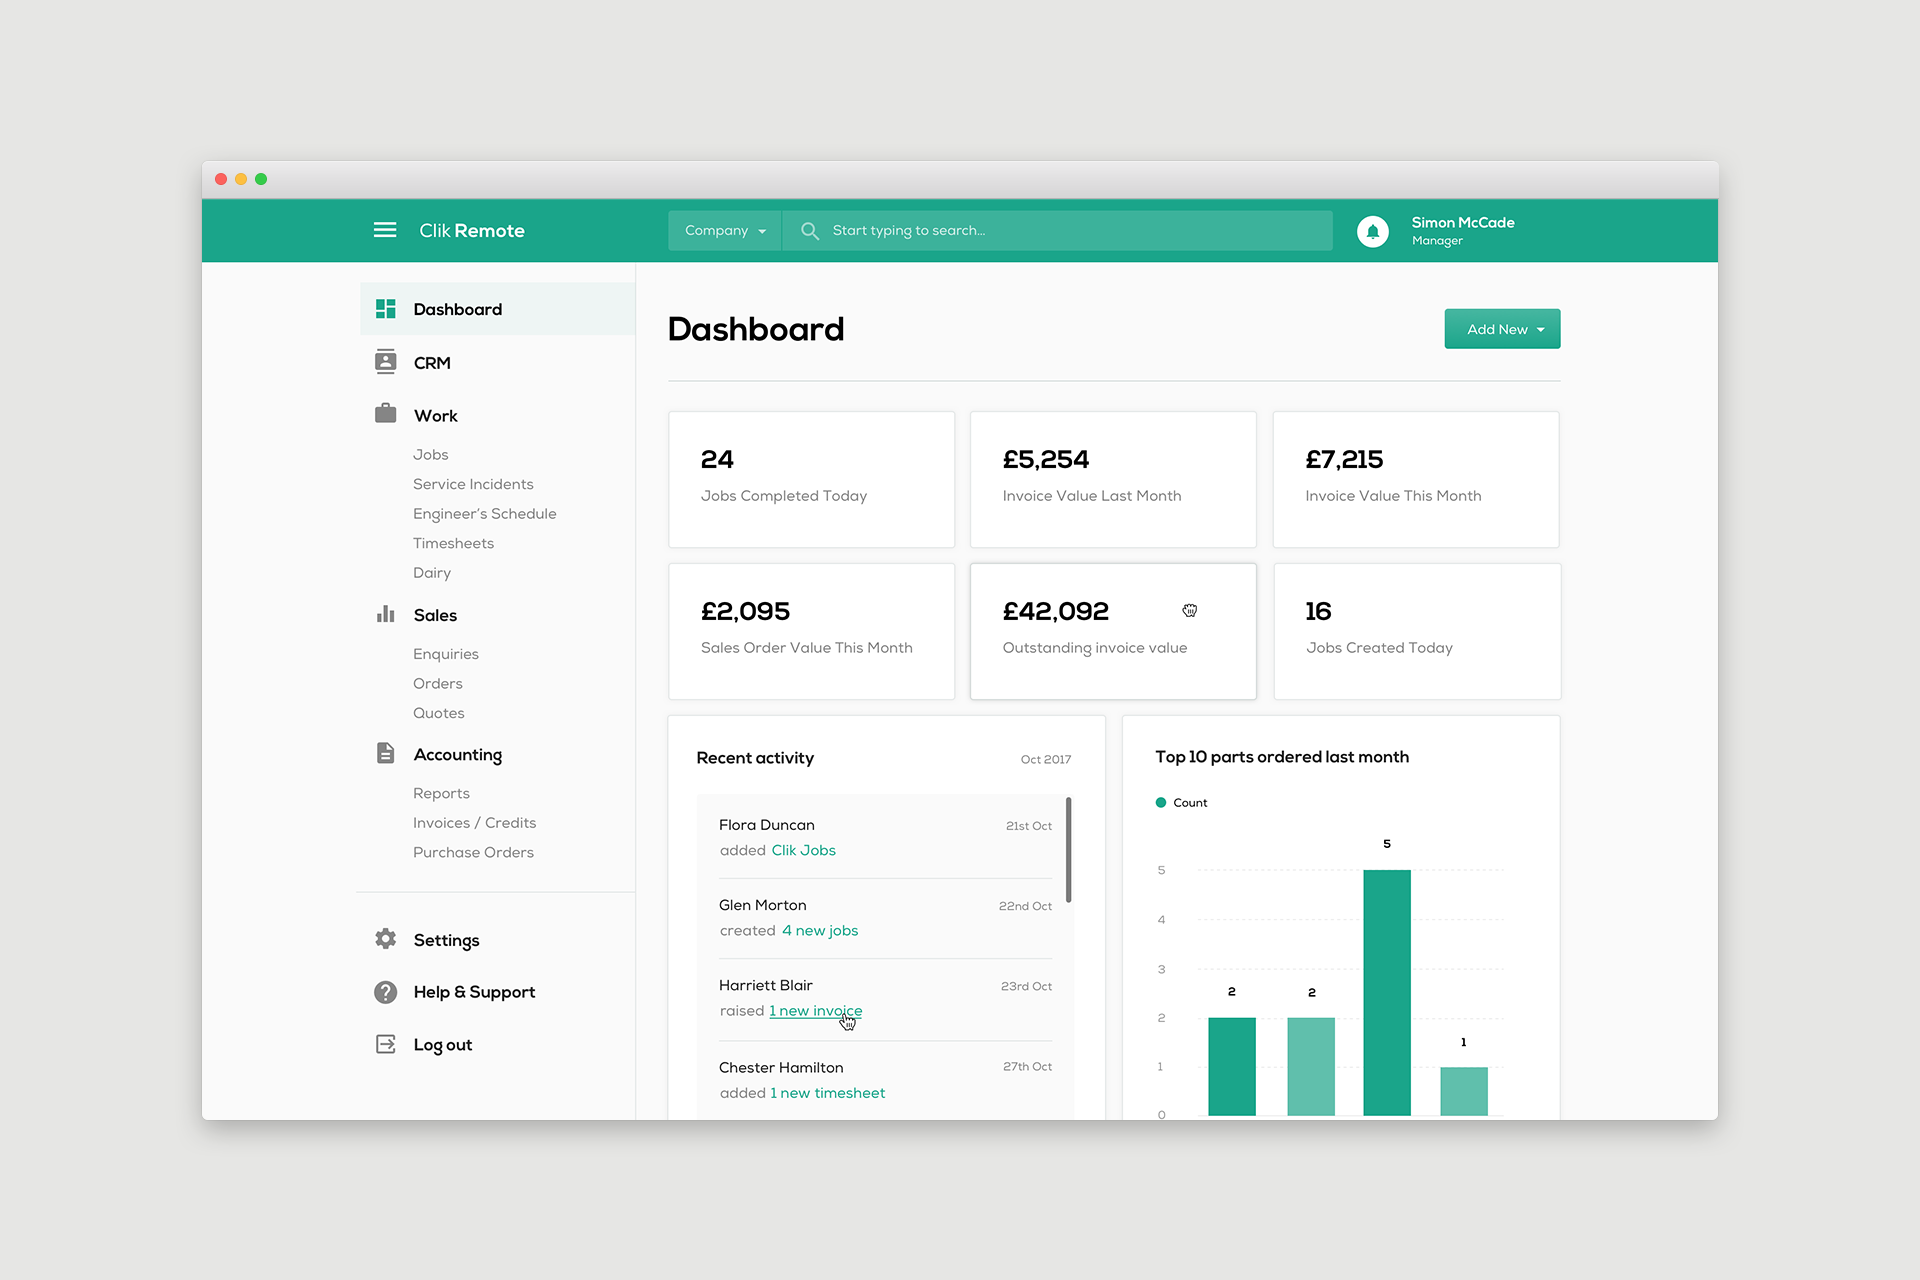 Dashboard GUI (Graphical User Interface)